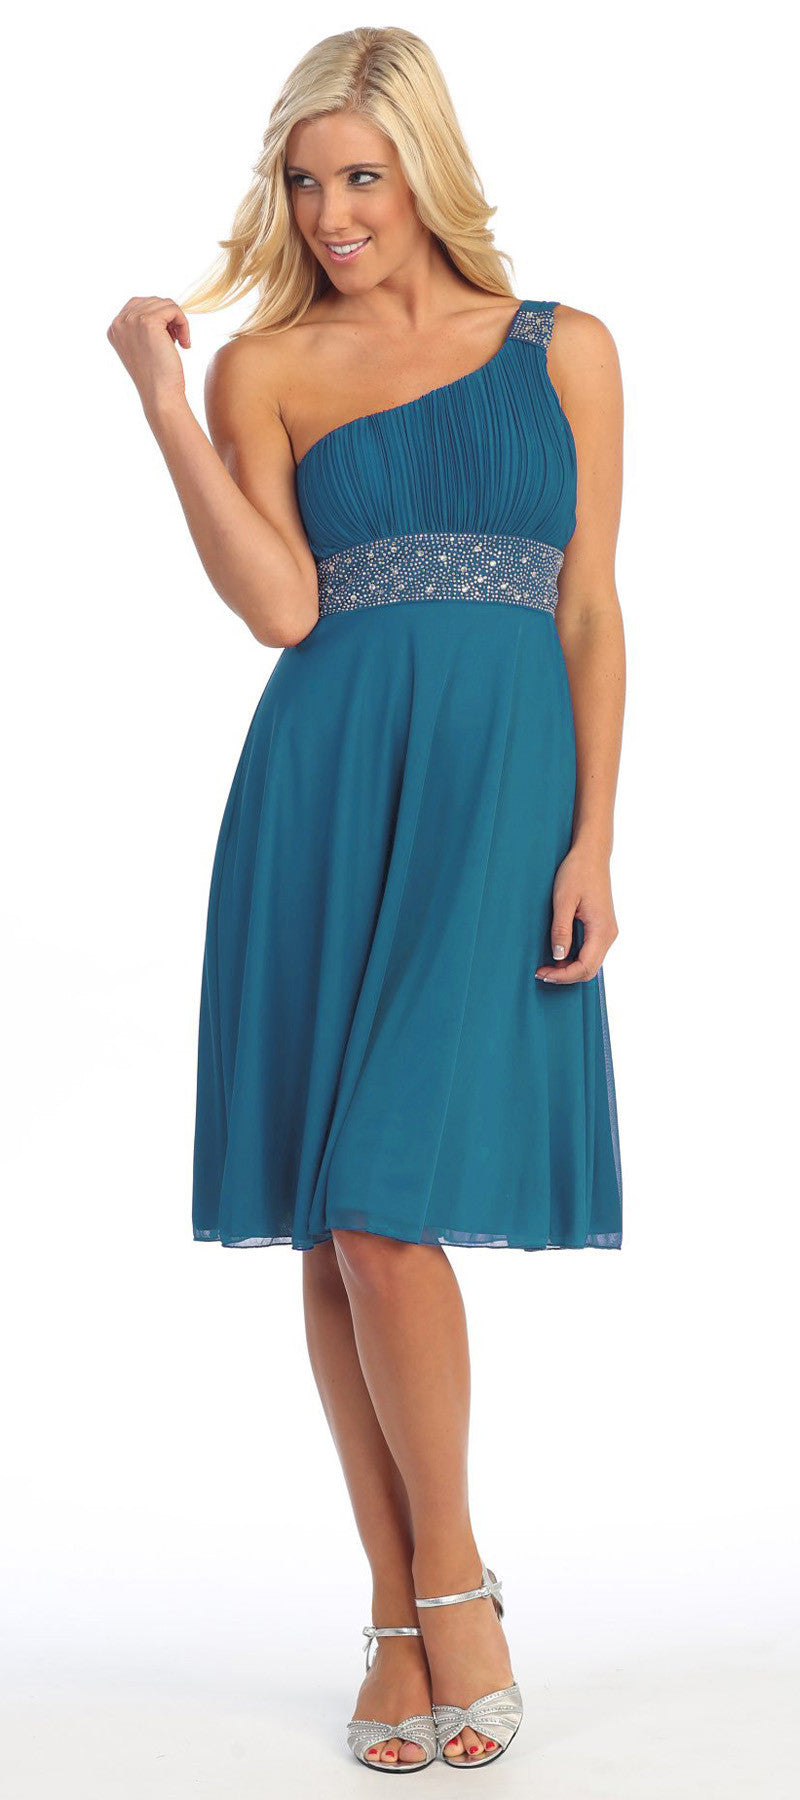 Teal Knee Length Cruise Dress chiffon One Shoulder W/Jacket